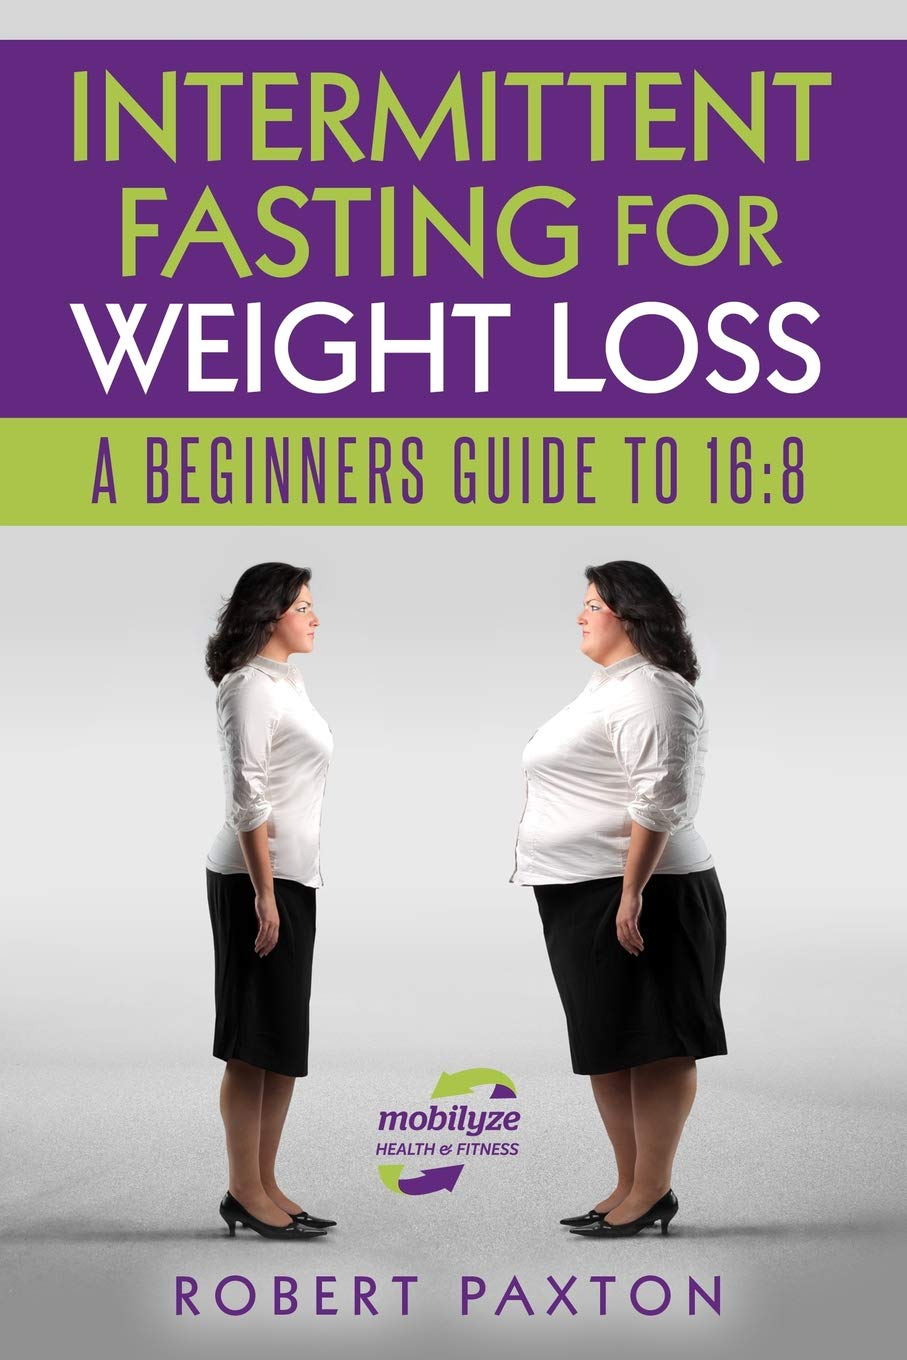 fasting diet 16/8 weight loss